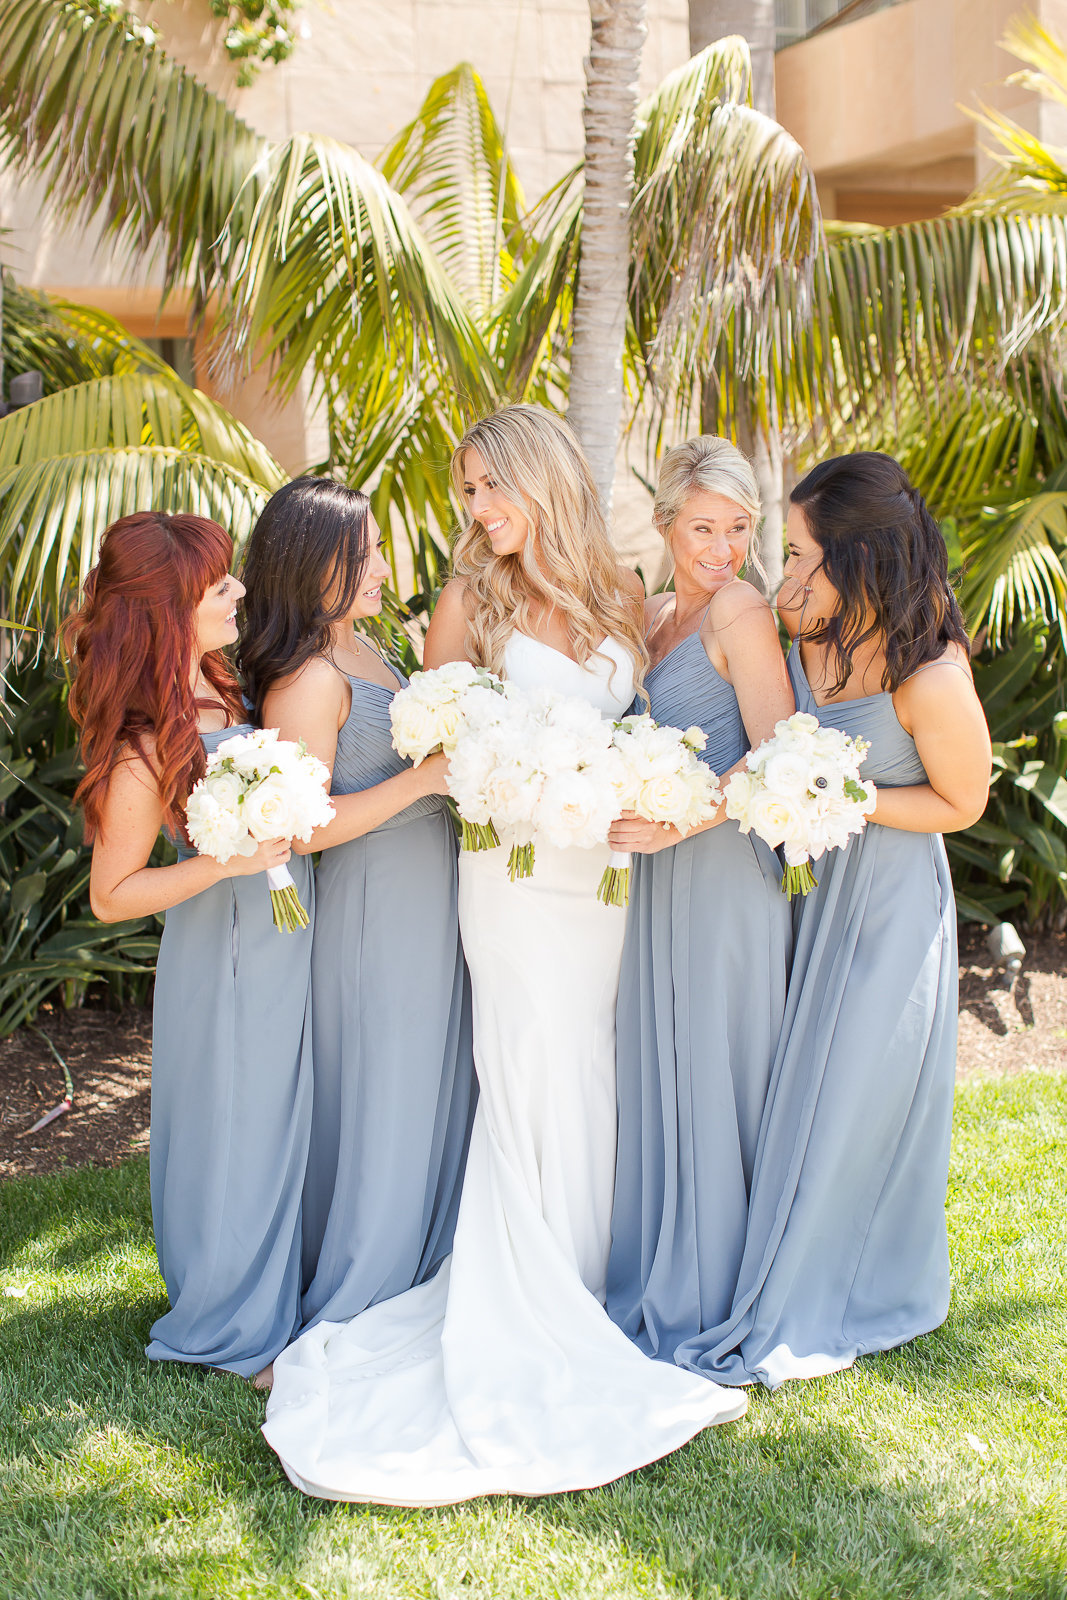 Newport Beach Caliornia Destination Wedding Theresa Bridget Photography-1-5